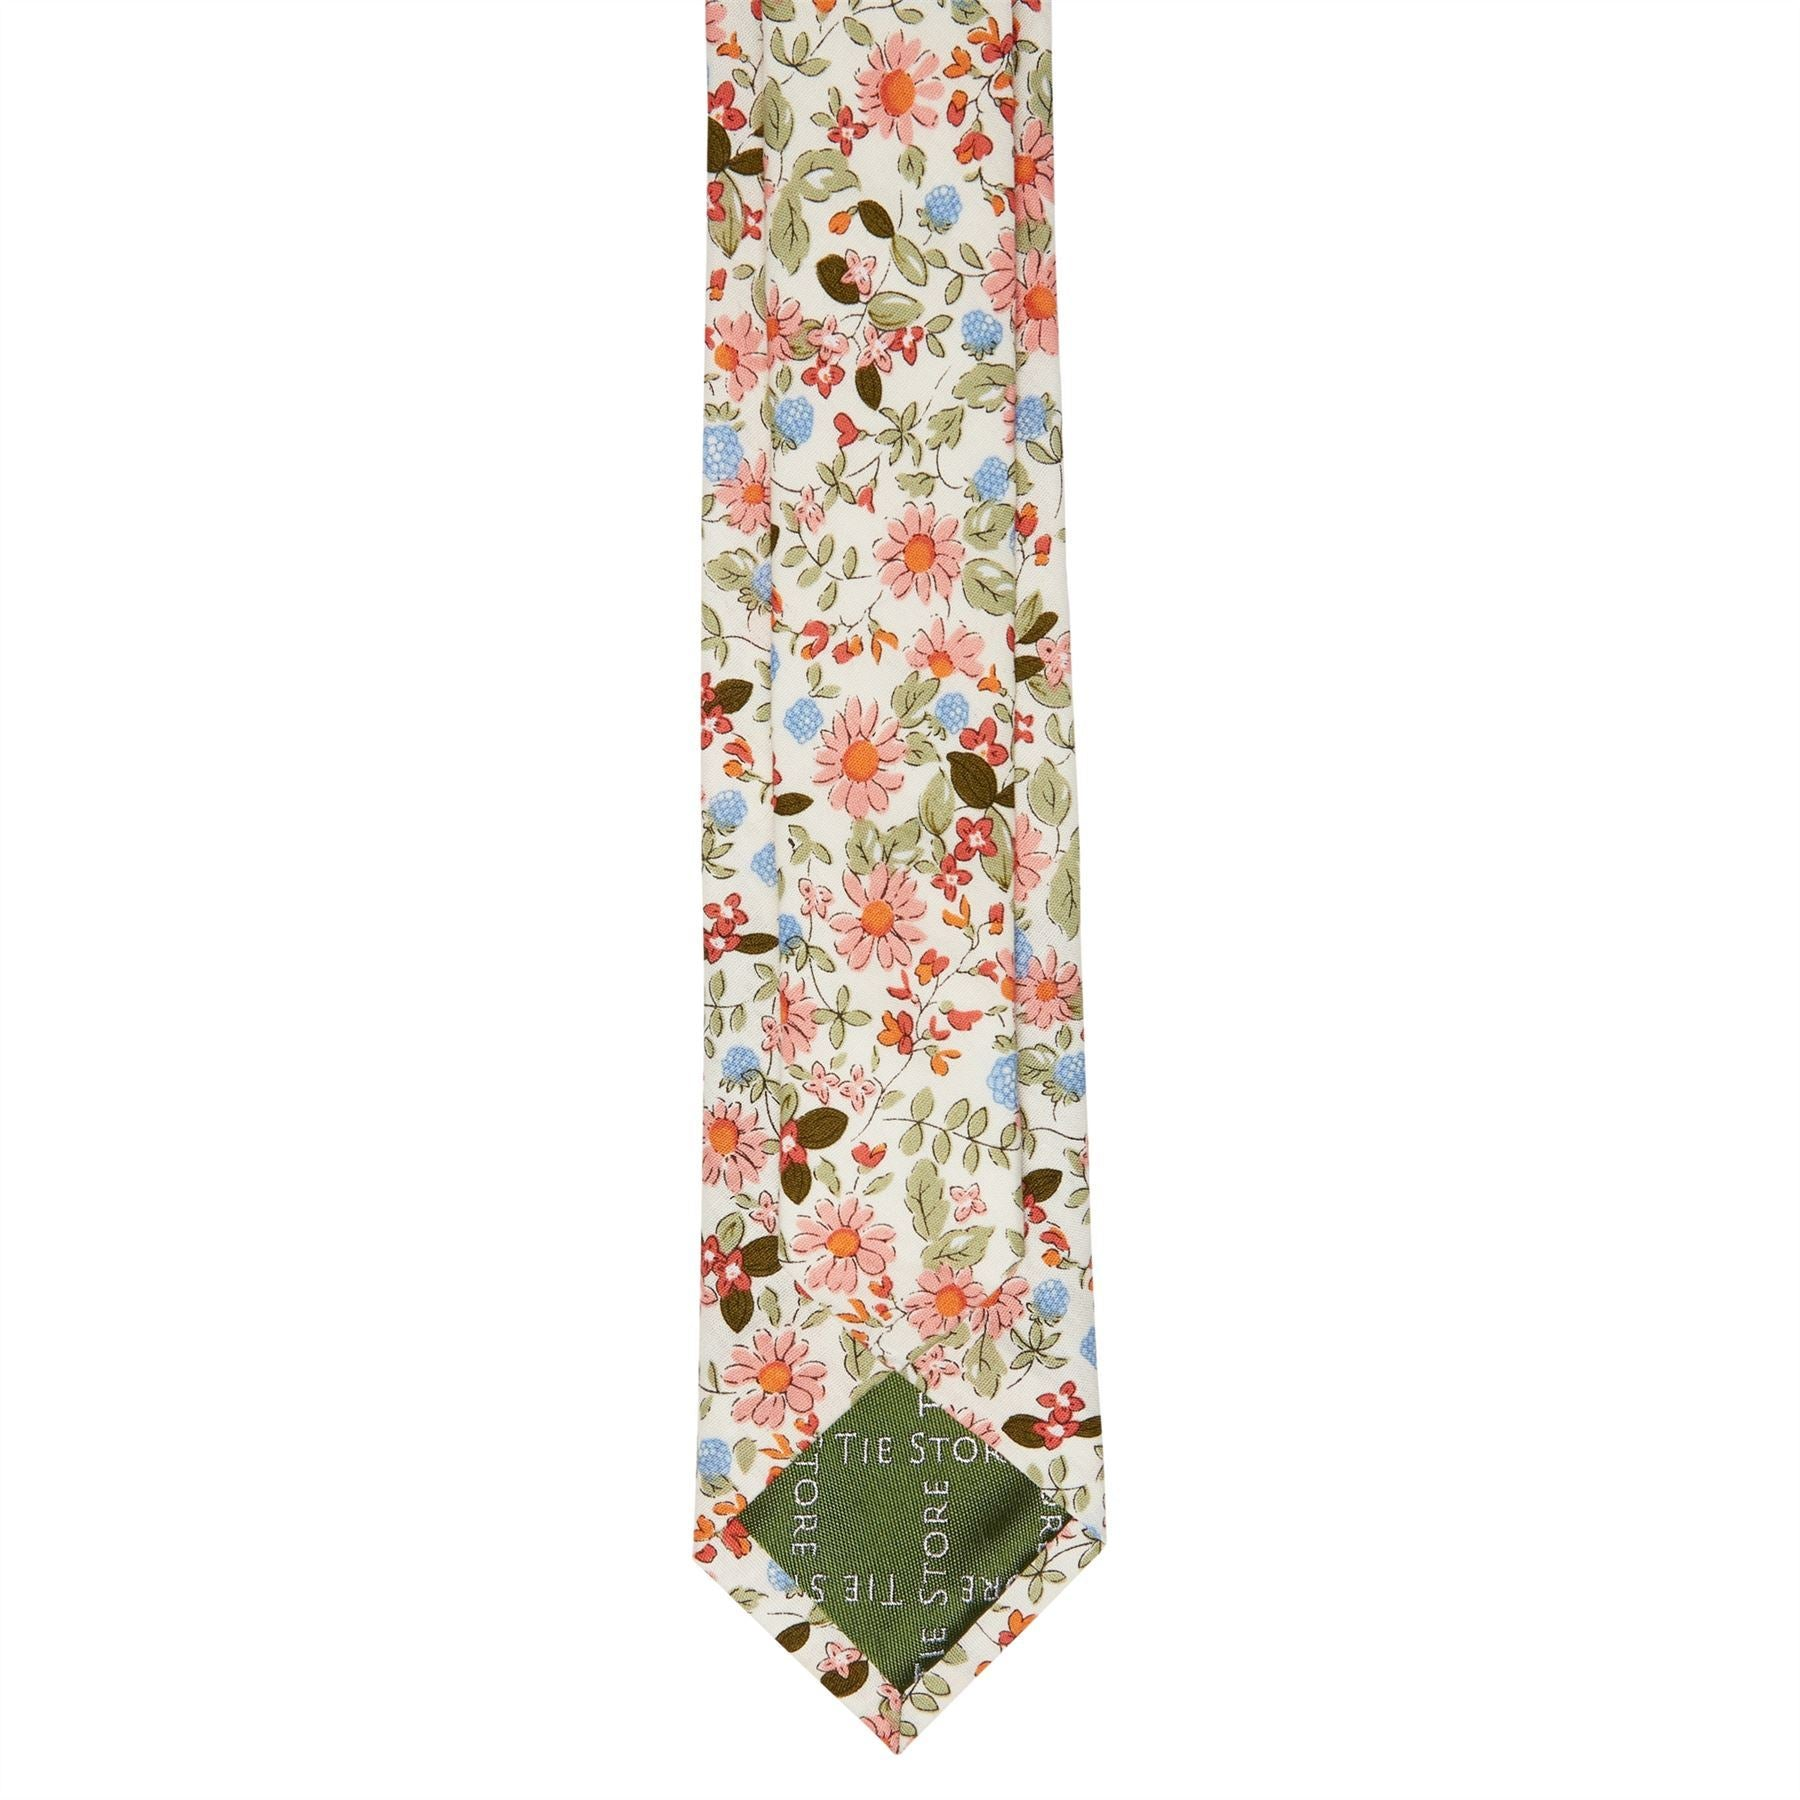 b71f40bf93d2 Off White Printed Floral Cotton Slim Tie – The Tie Store